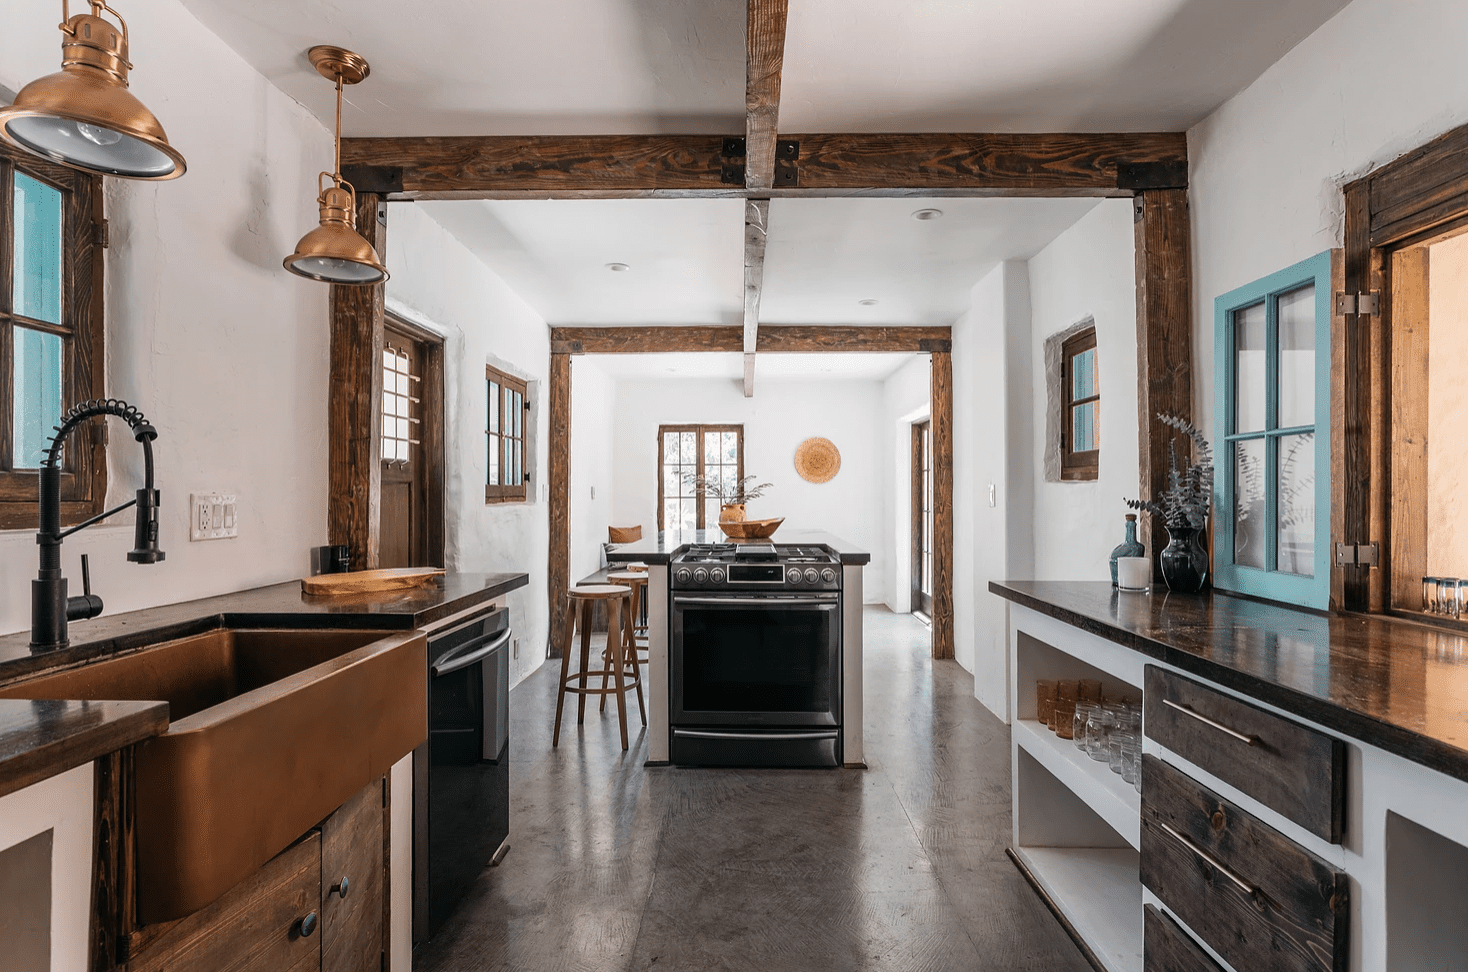 An open-concept kitchen lined with exposed wood beams